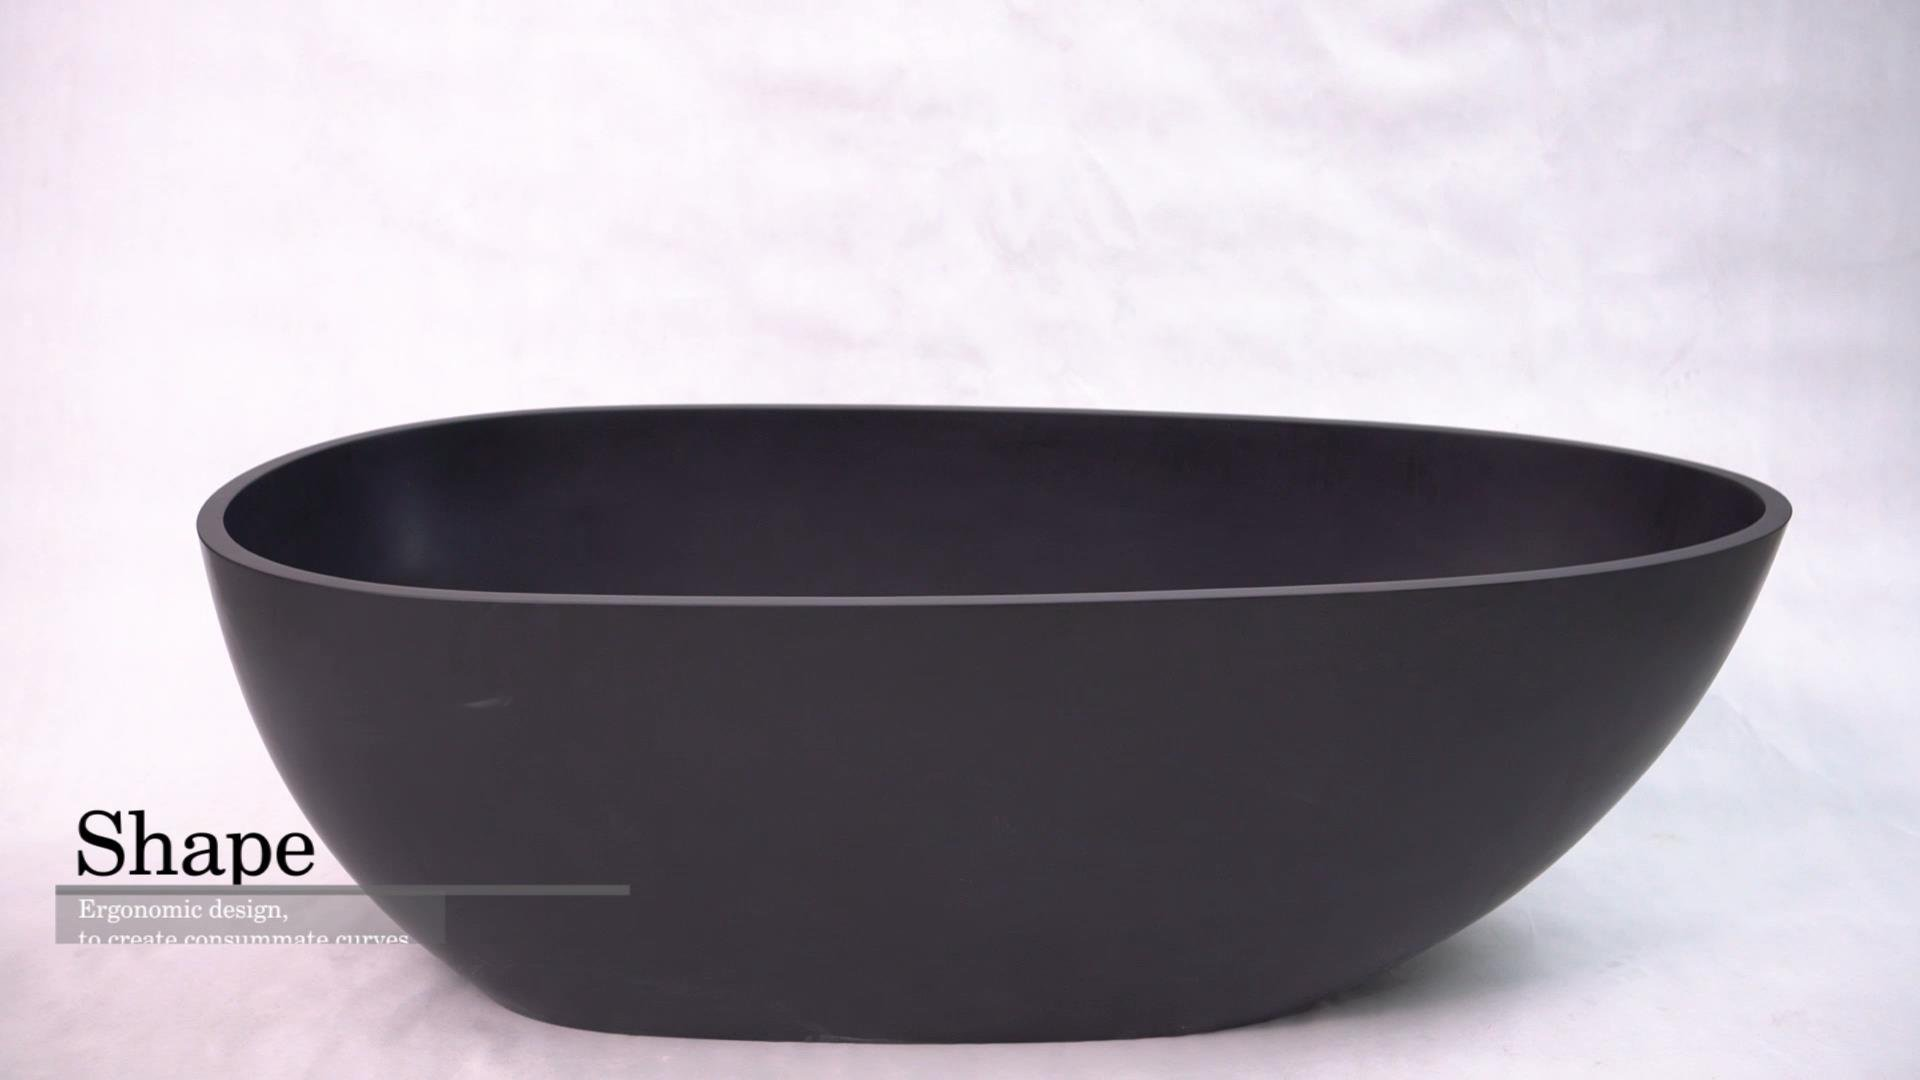 Egg oval shaped black color freestanding solid surface stone cast acrylic resin bathroom bathtub BS-8608B product presentation-solid surface bathtub-best bathroom faucets-best bathroom faucets-Bellissimo